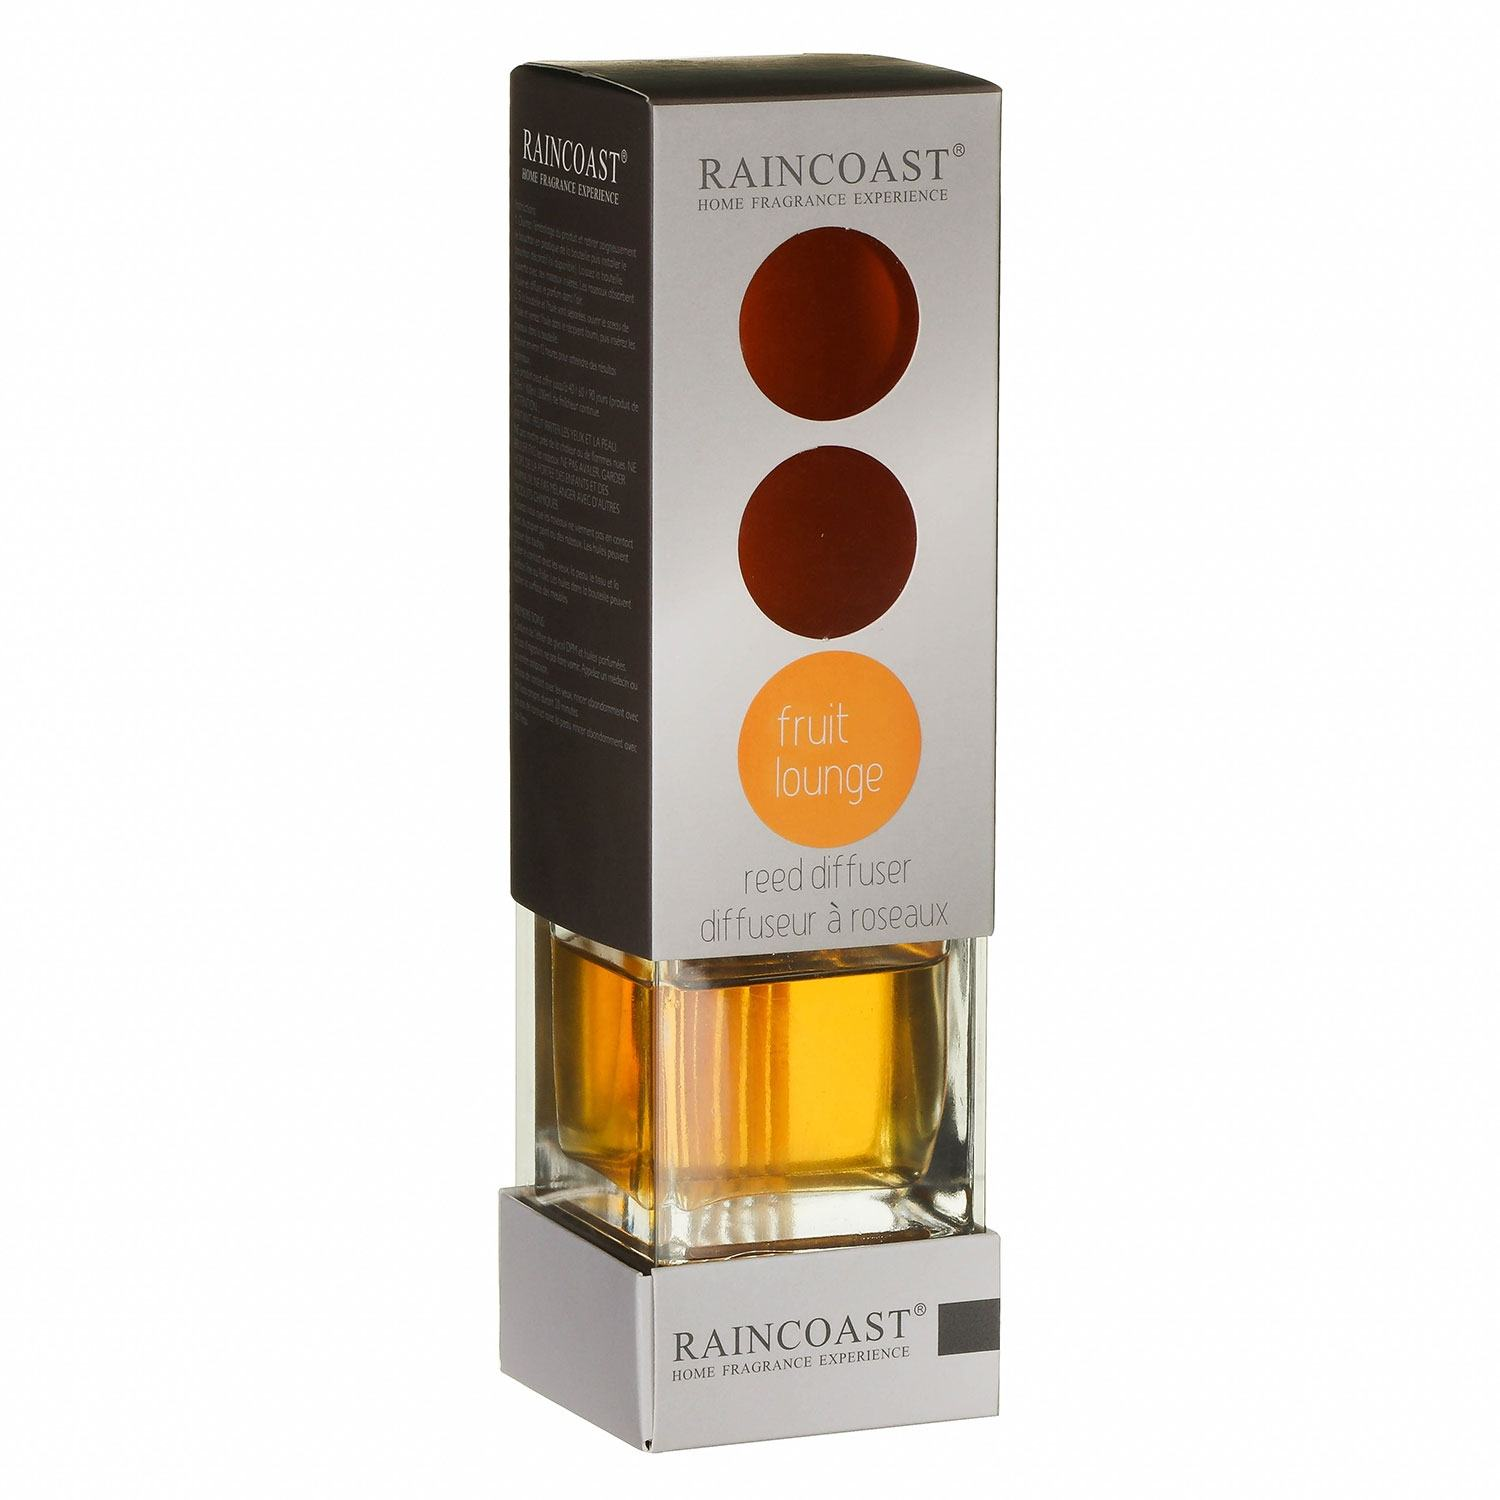 Temptation Raincoast Fruit Lounge Reed Diffuser Temptation Gifts